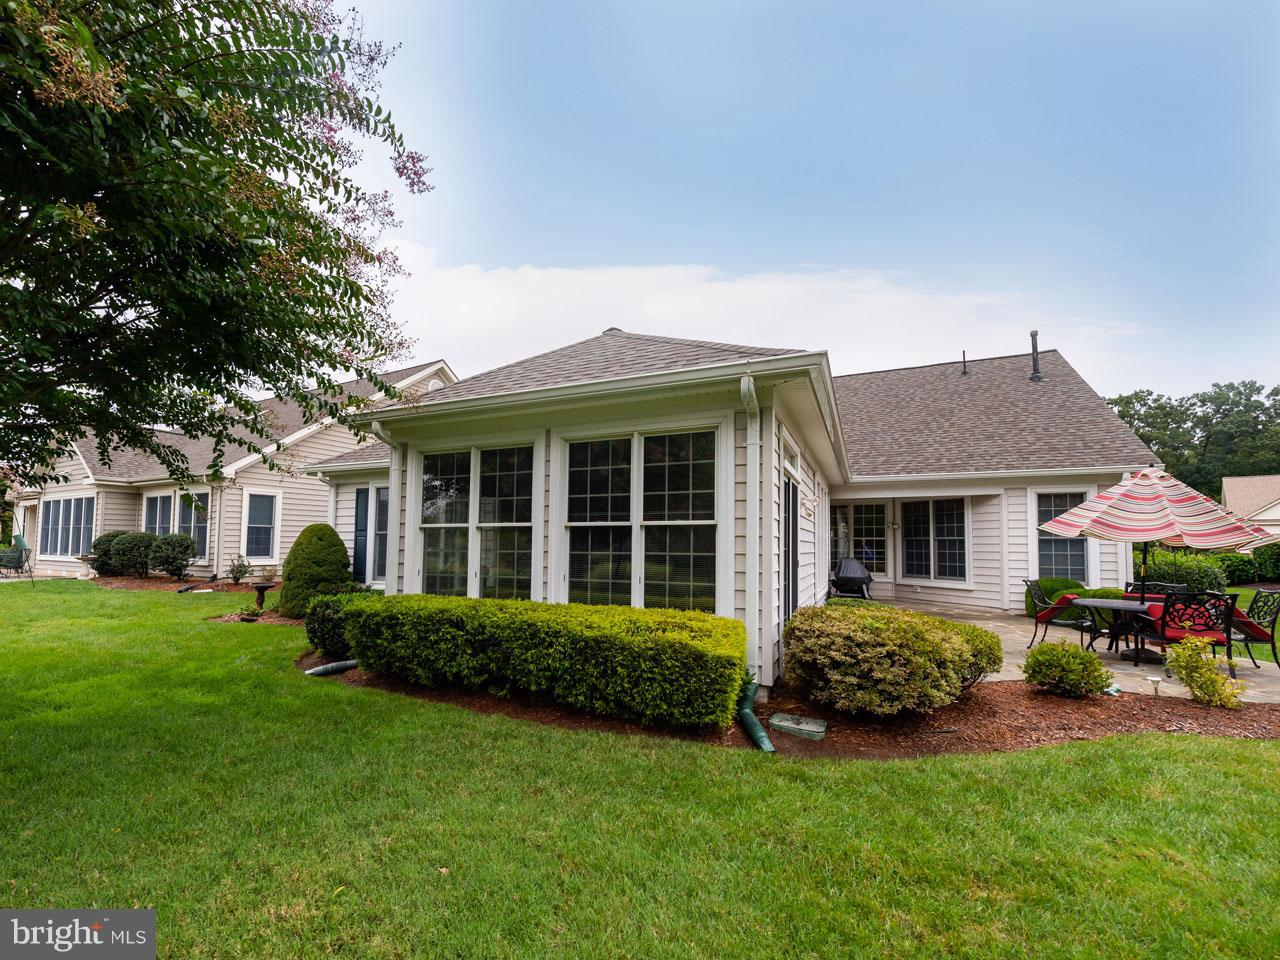 1005040466-300638083009-2021-07-22-06-45-08        Gainesville Delaware Real Estate For Sale   MLS# 1005040466  - Best of Northern Virginia